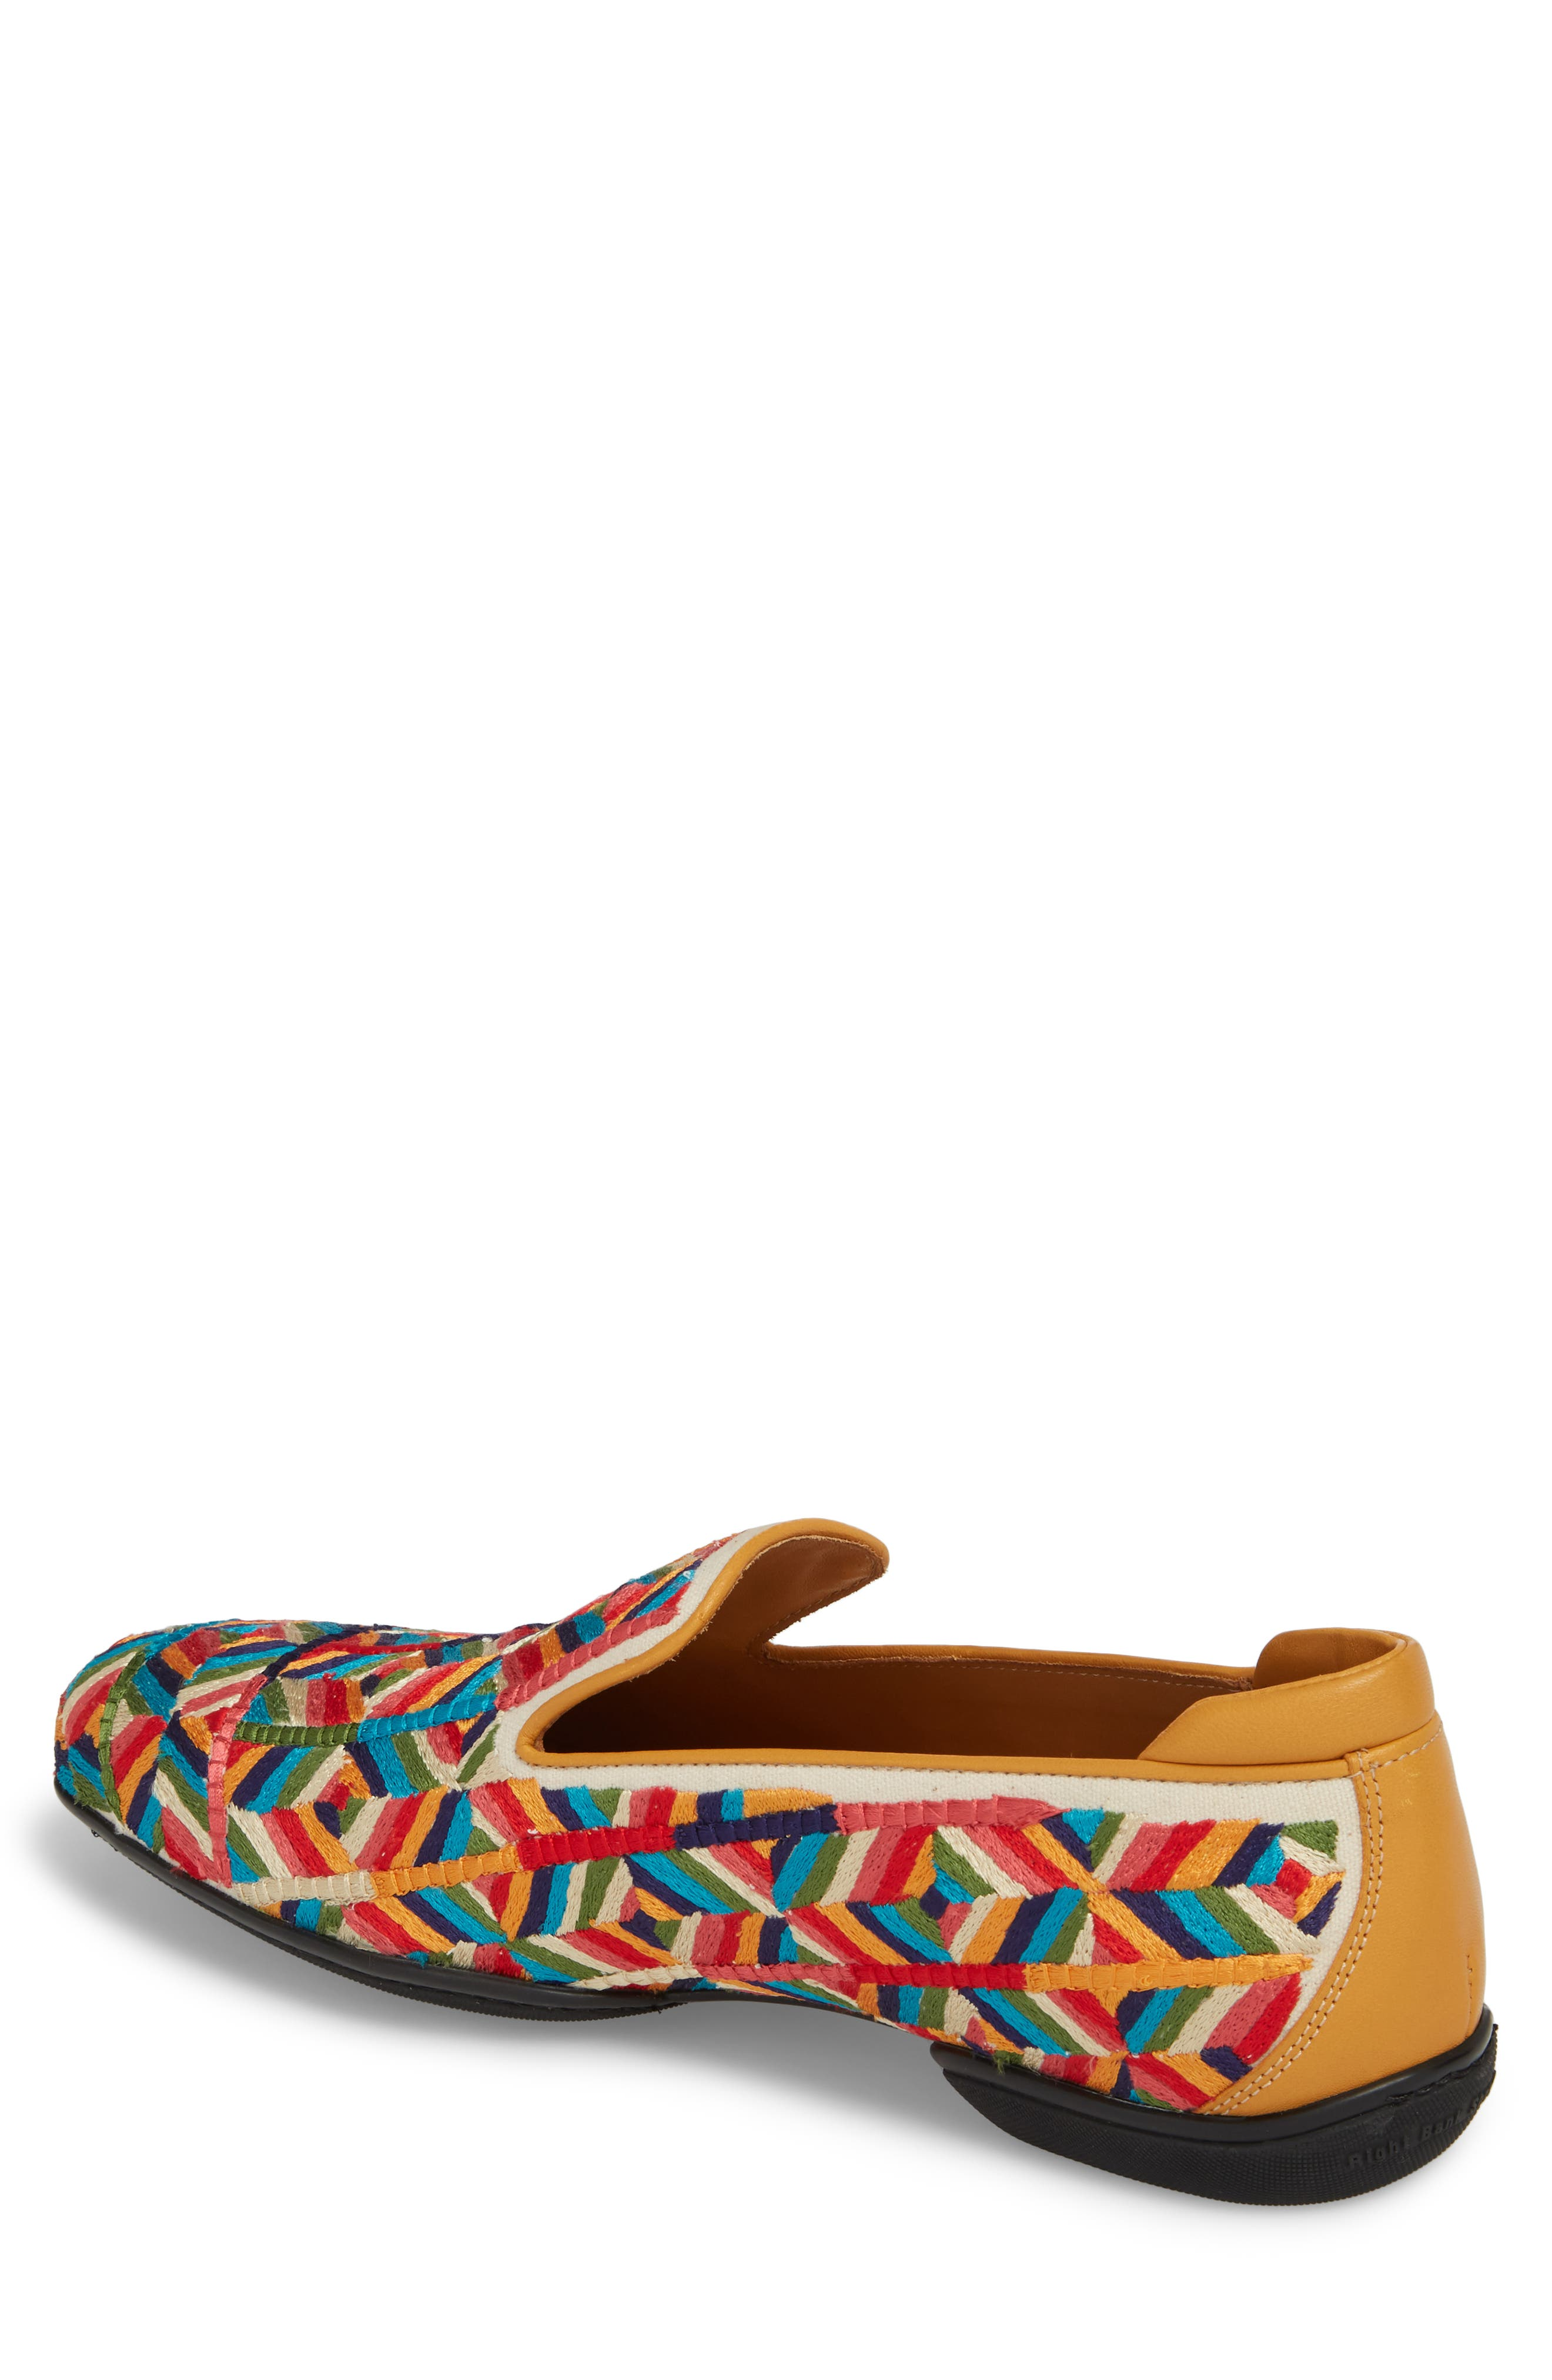 Verge Venetian Loafer,                             Alternate thumbnail 2, color,                             Yellow Fabric